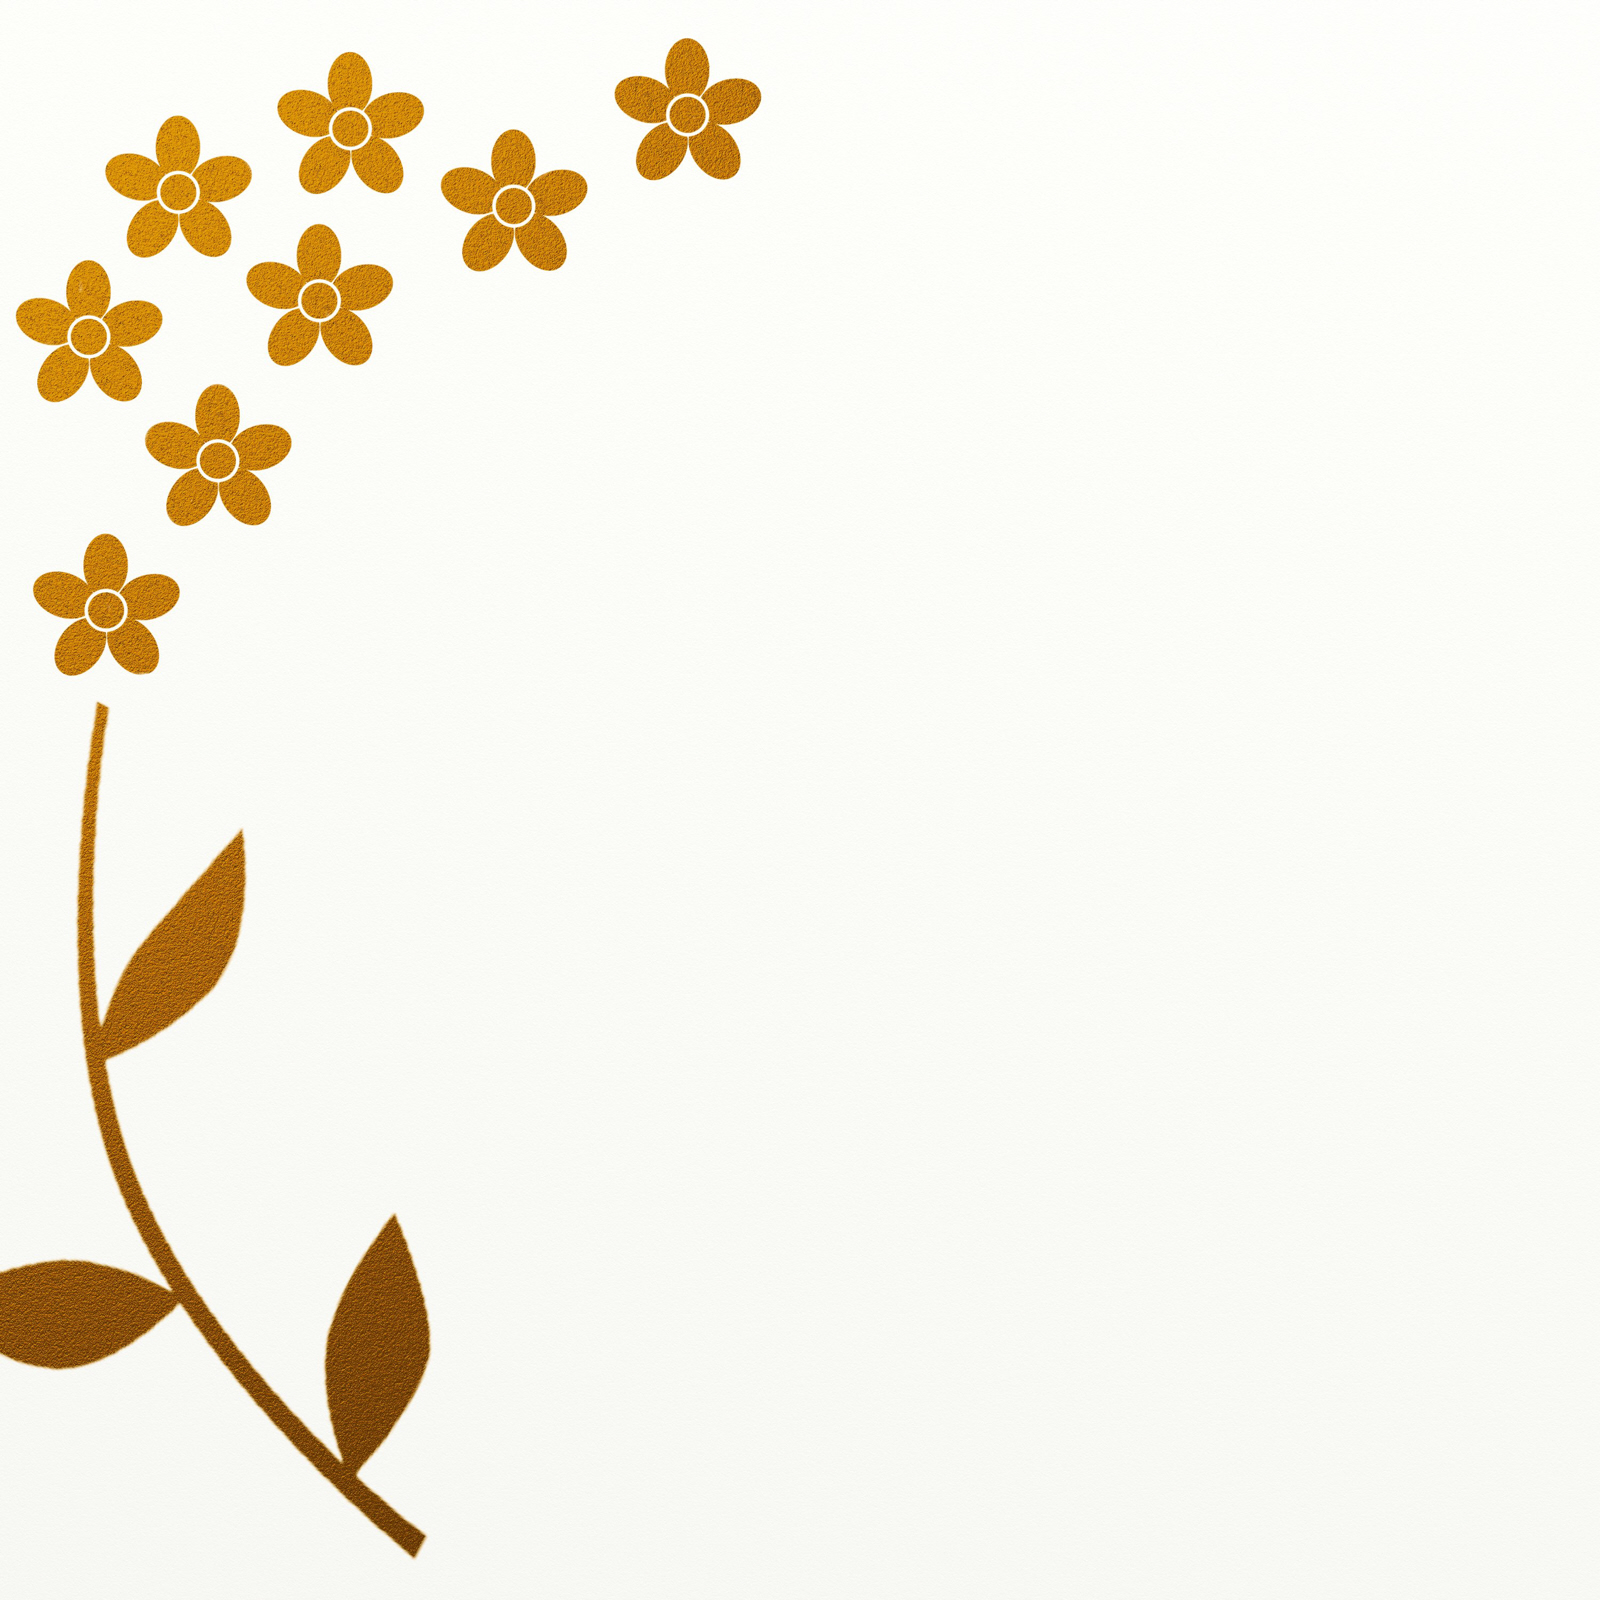 Gold leaf clipart uk.